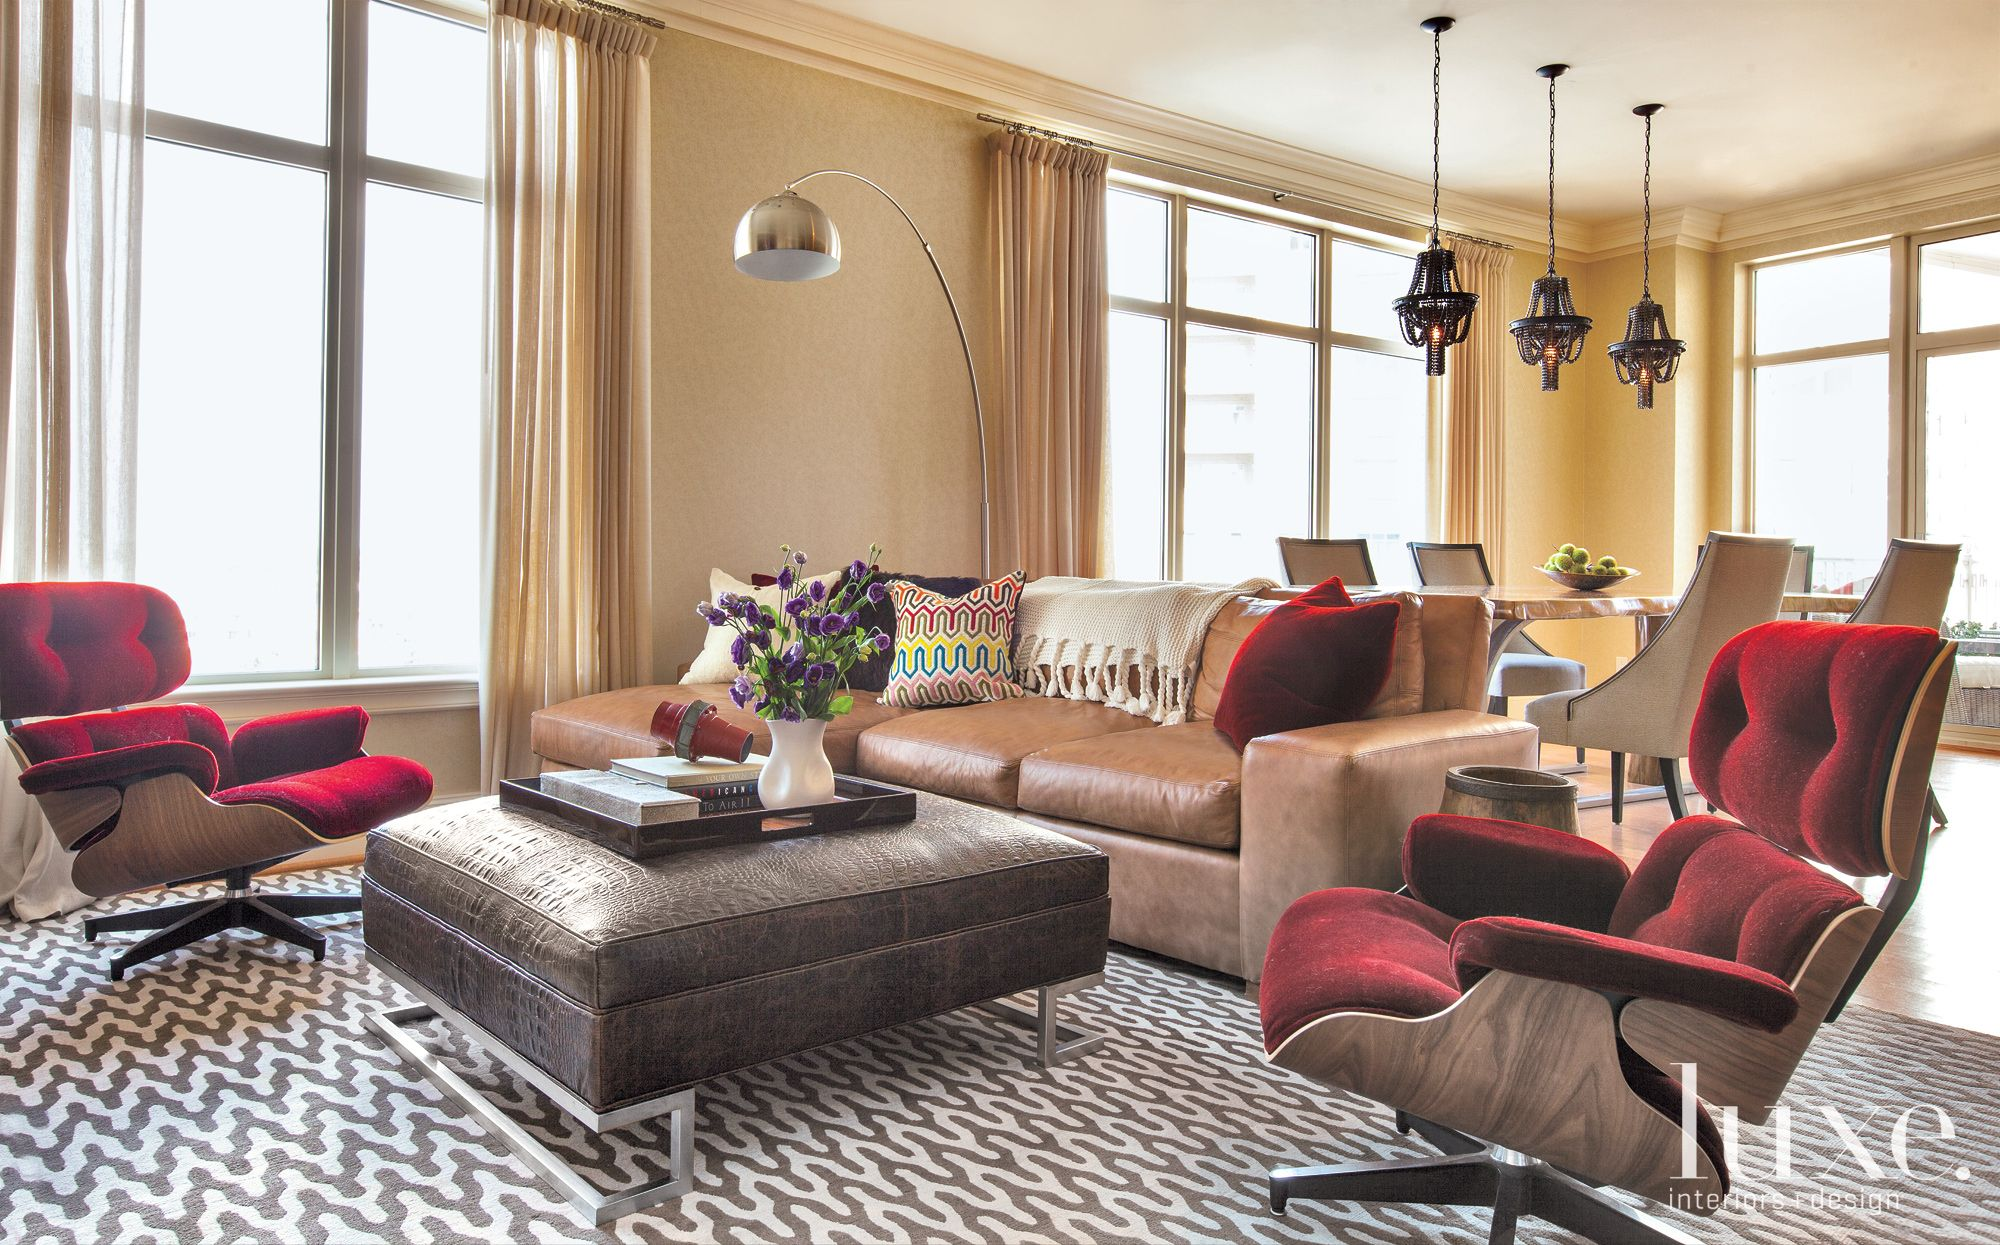 Modern Neutral Living Room with Burgundy Lounge Chairs